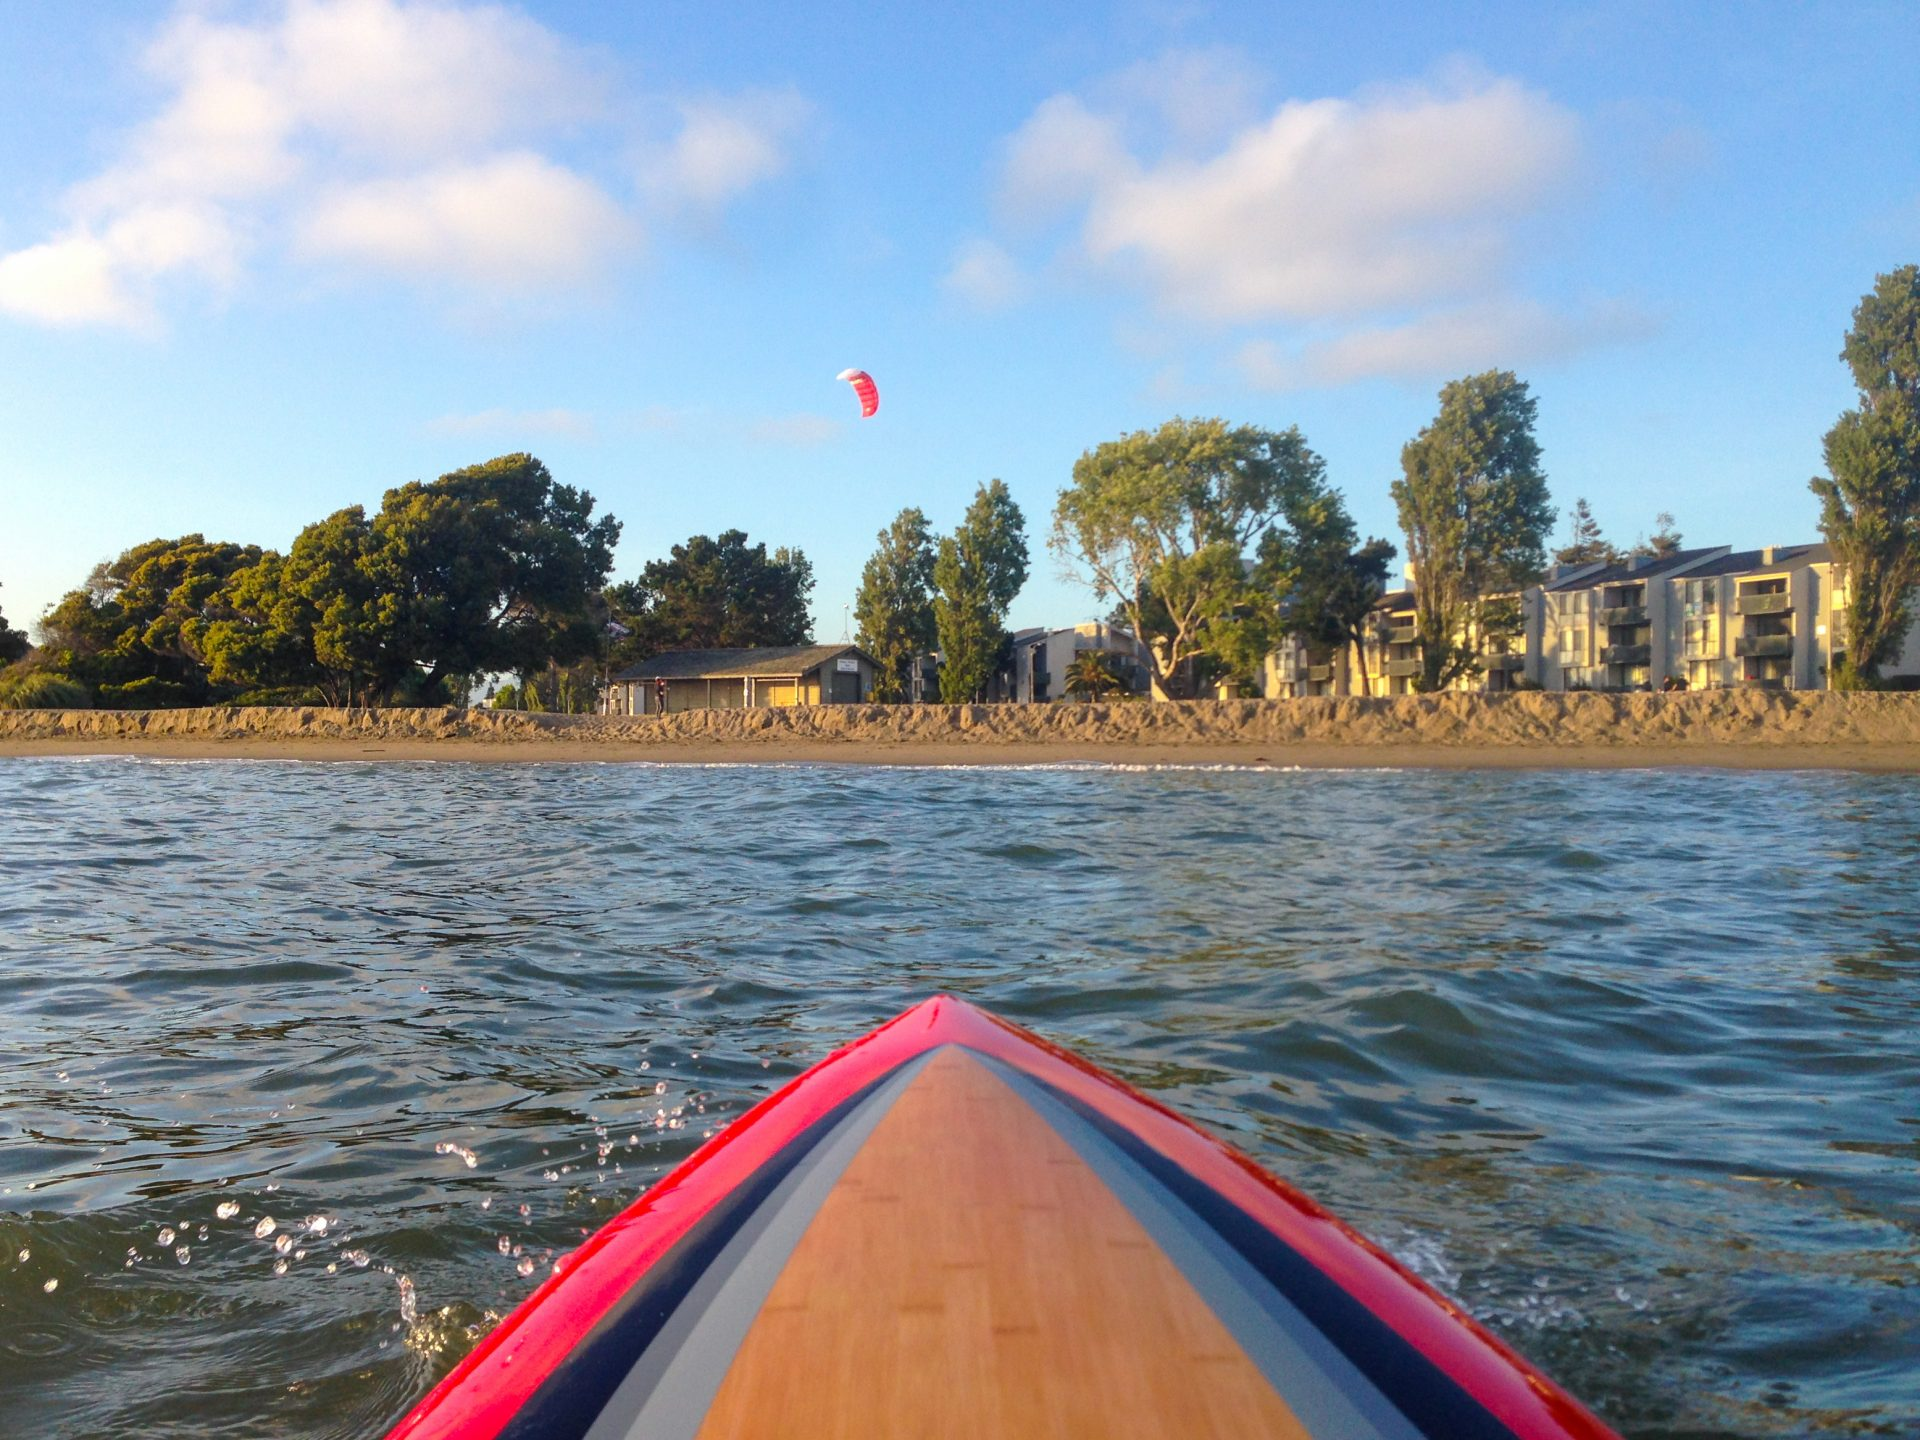 View from paddleboard toward sandy beach and trees and apartments beyond